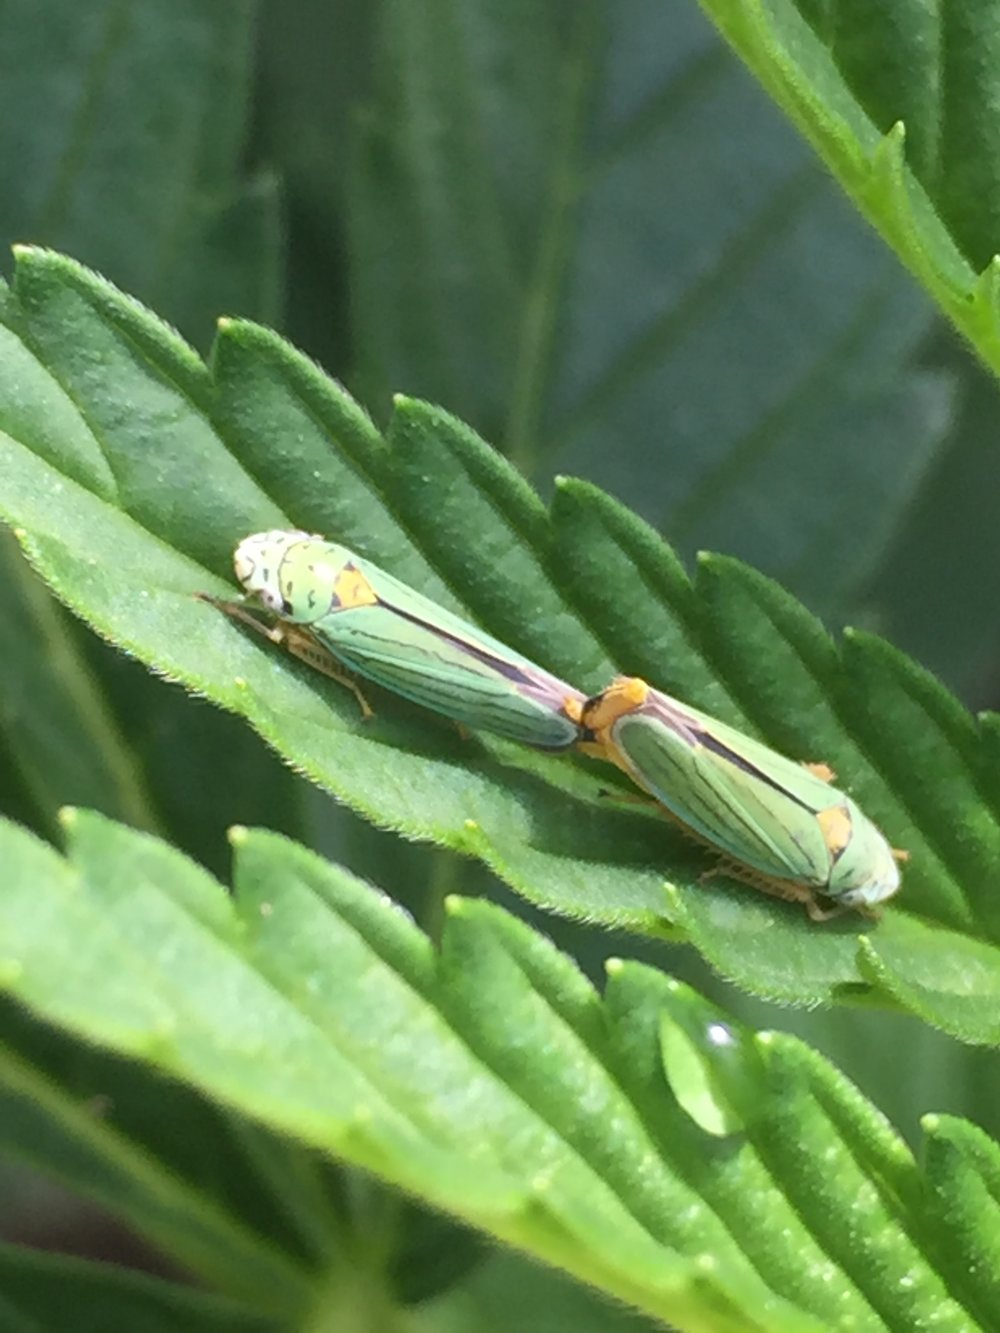 Leafhoppers Mating.jpeg